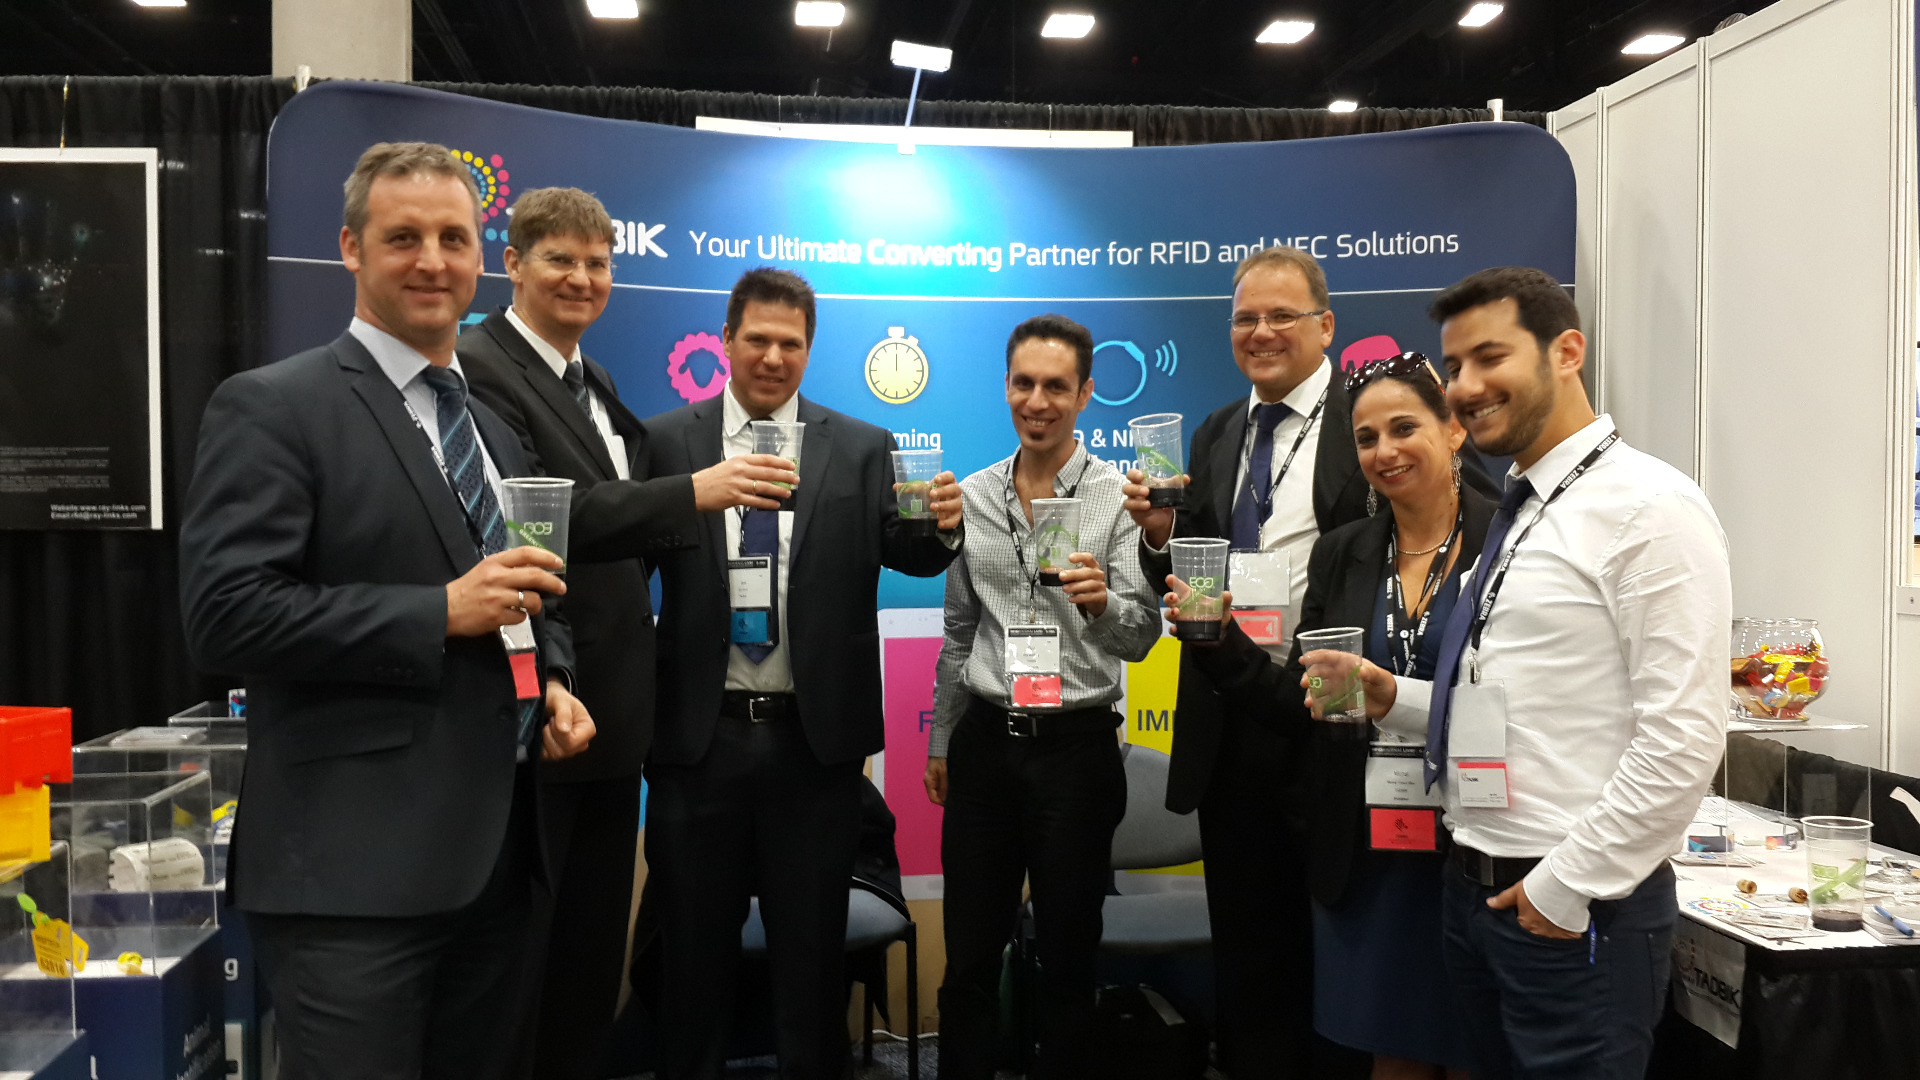 Raising a toast at the RFID Journal Live! 2015 in San Diego. From left: Martin Müller (Sales Manager RFID, Mühlbauer), Thomas Betz (Managing Director, Mühlbauer), Gili Drori (CEO, Tadbik), Guy Goldberg (CTO, Tadbik), Greg Galanakis (RFID Sales Africa, Tadbik), Michal Yanuv Max (Sales And Marketing Director, Tadbik), Idan Uliel (Electronic Segment Leader, Tadbik).